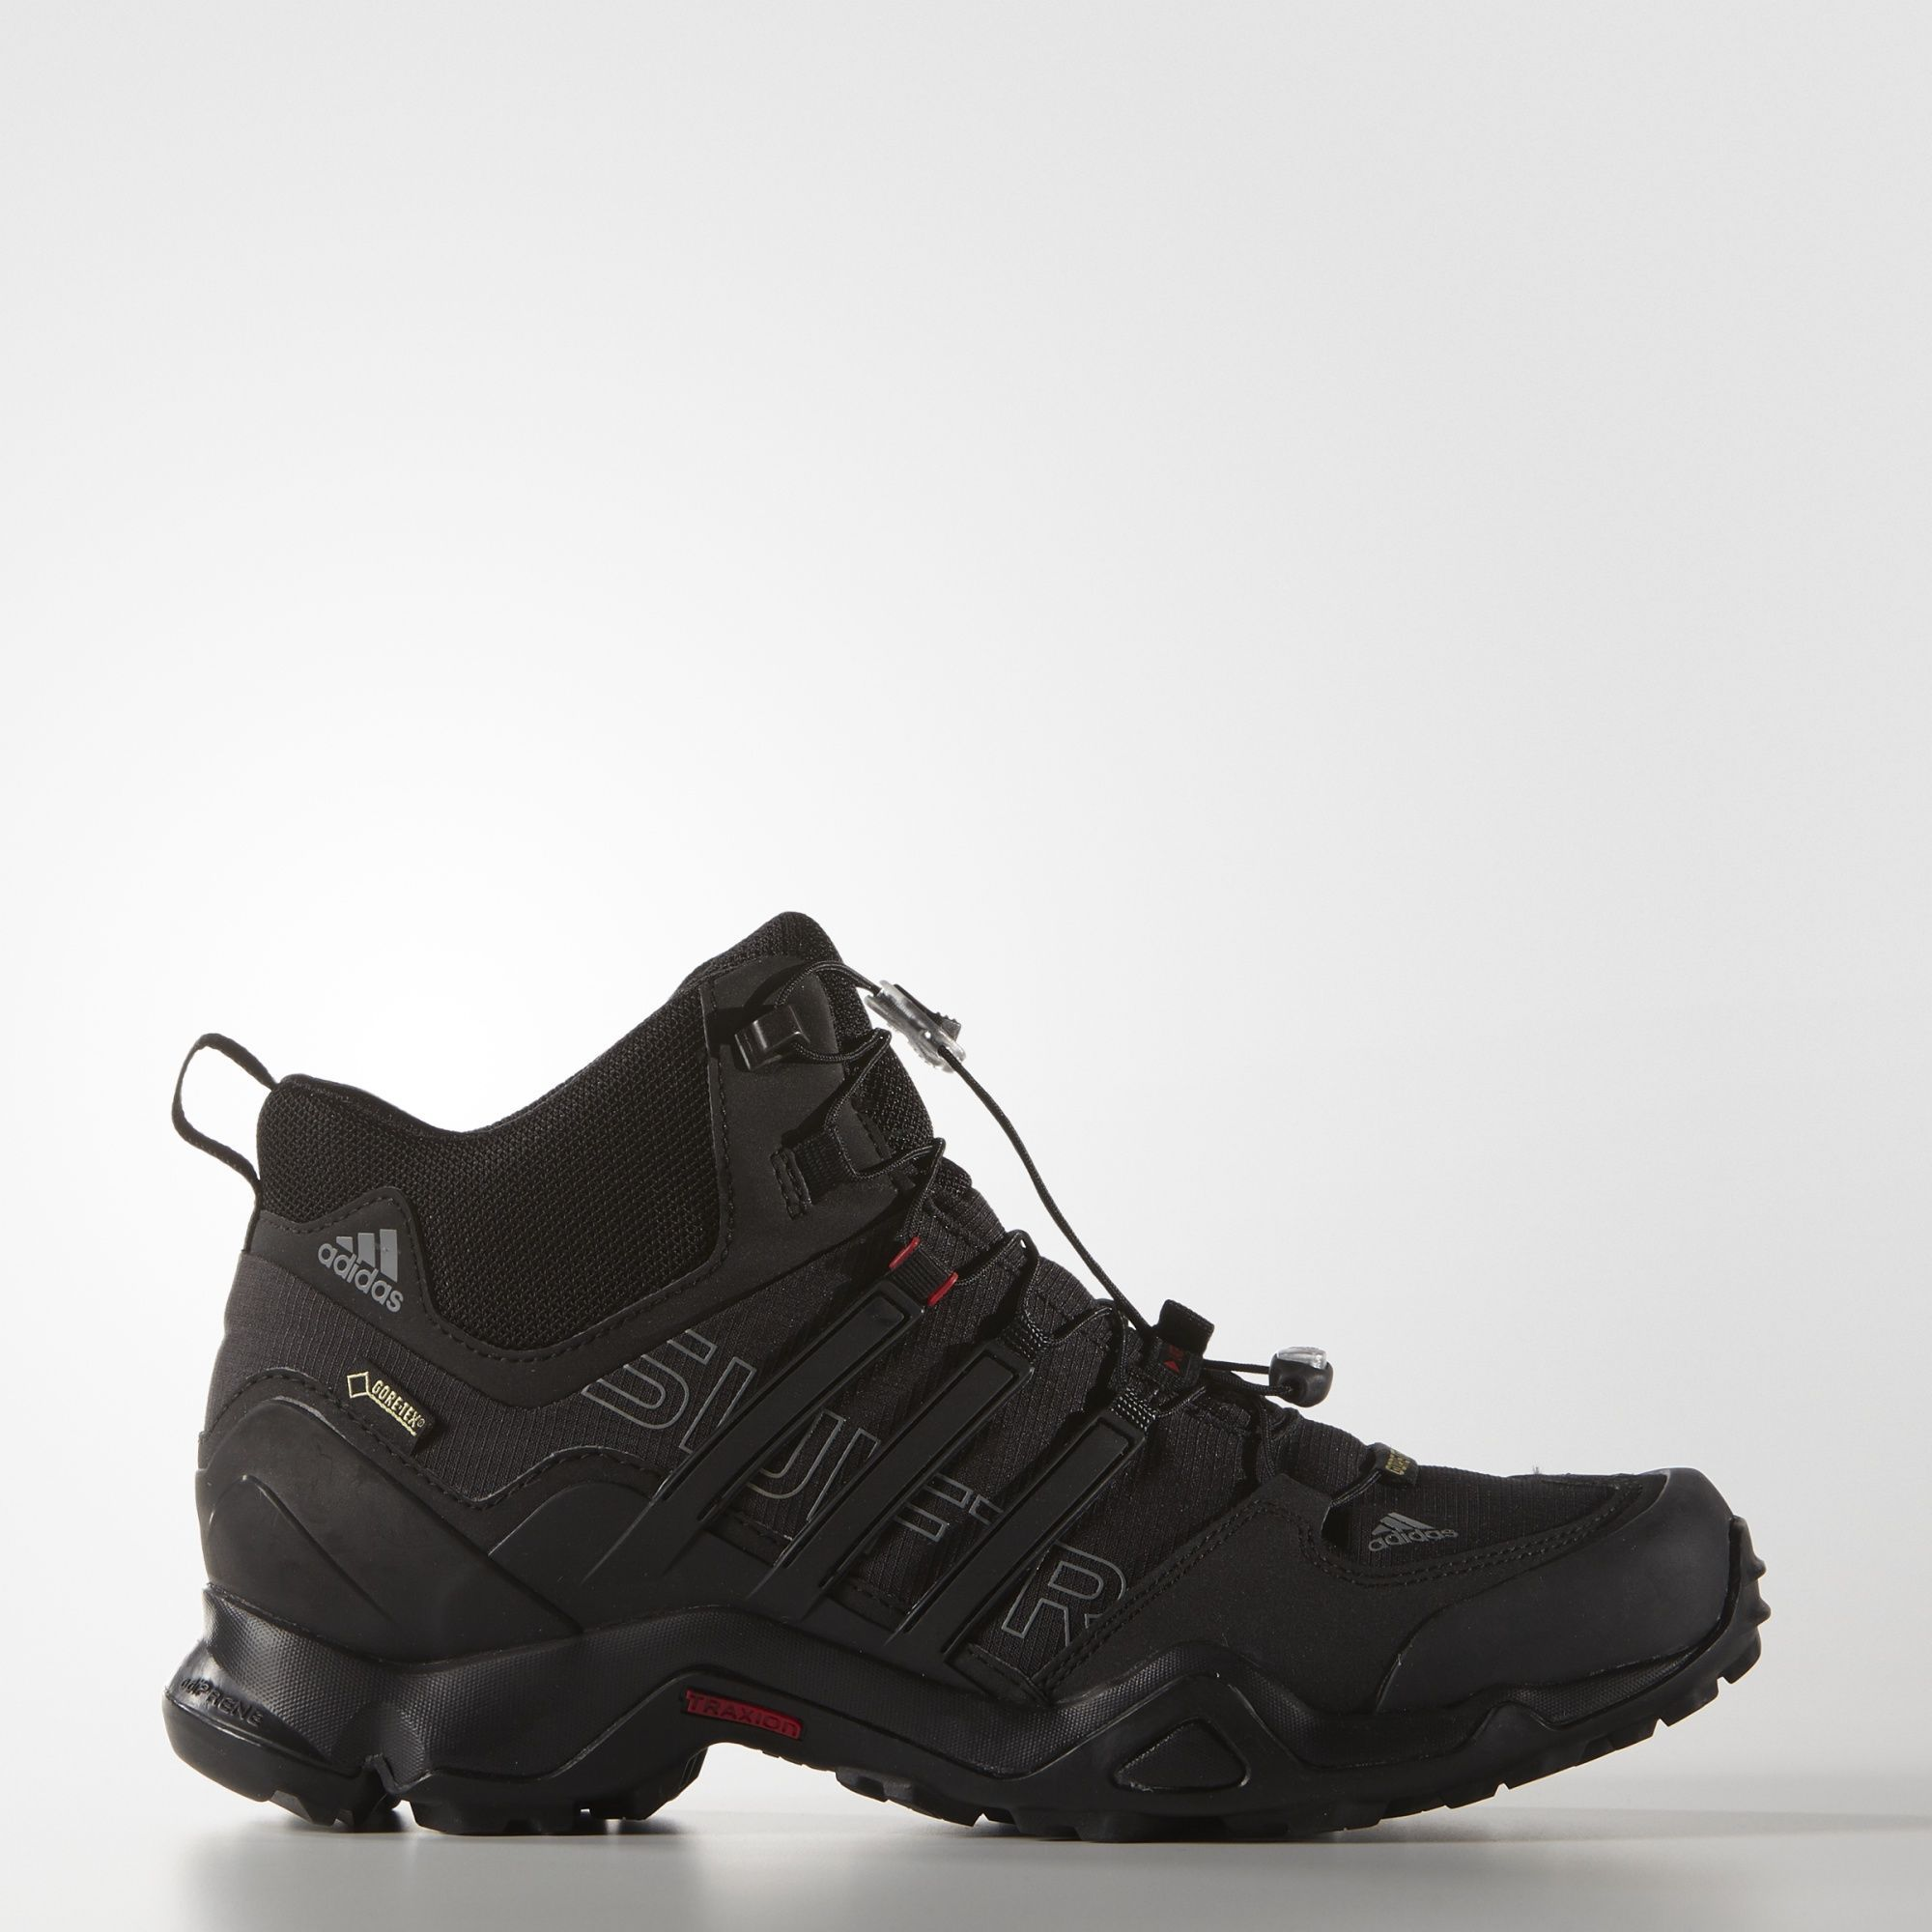 Boot Adidas Shoes登山用鞋Hiking Terrex Swift R Gtx Mid wv0NPym8nO